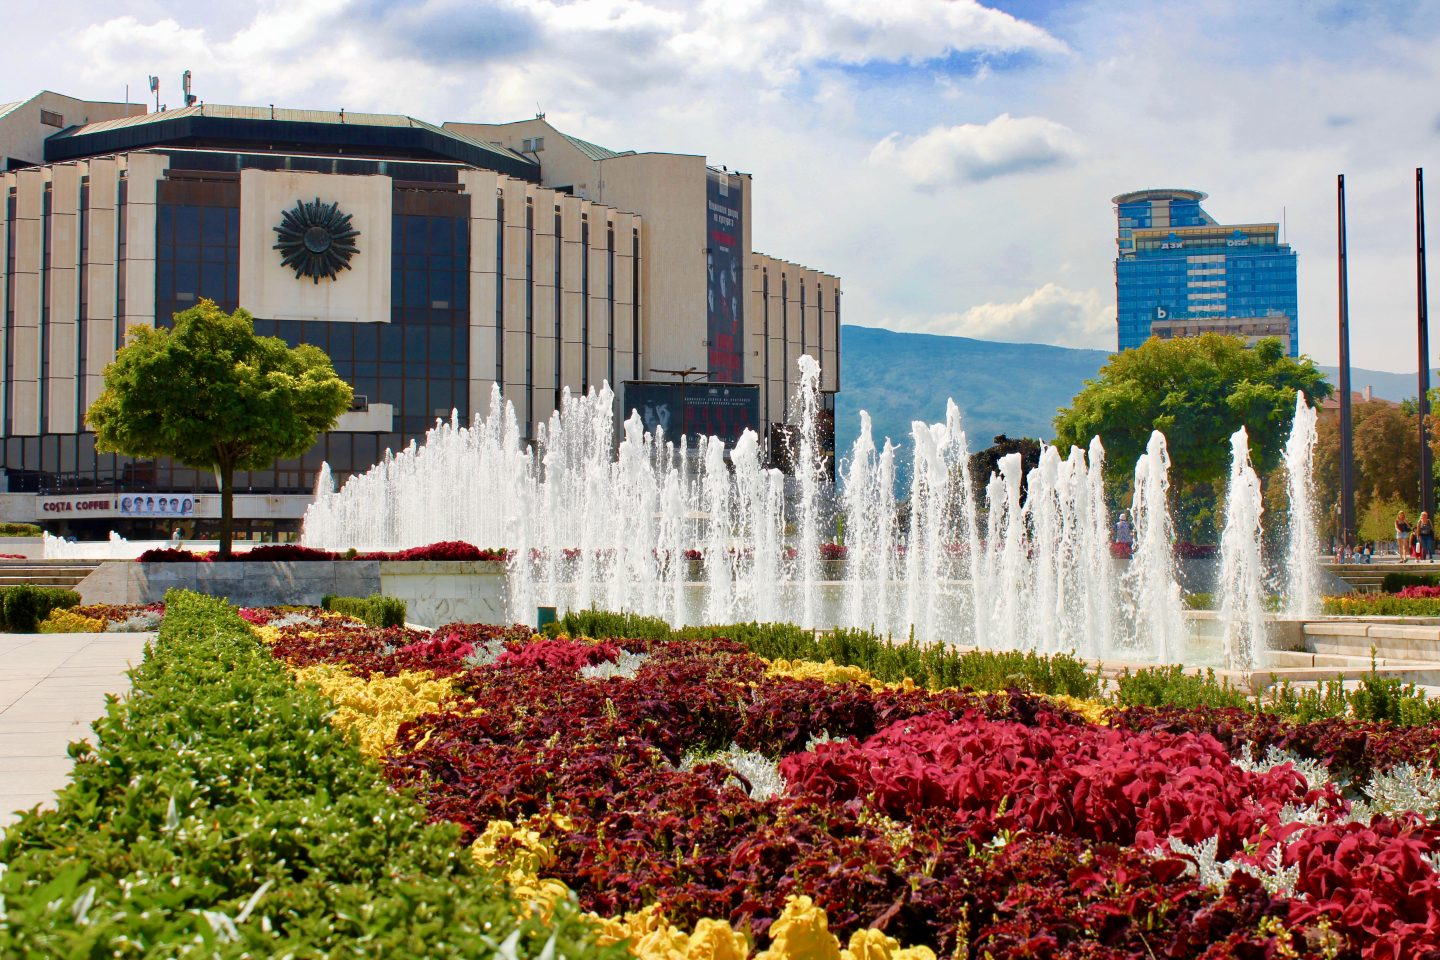 sofia city break: A park in Sofia, showing colourful flowers with fountains behind